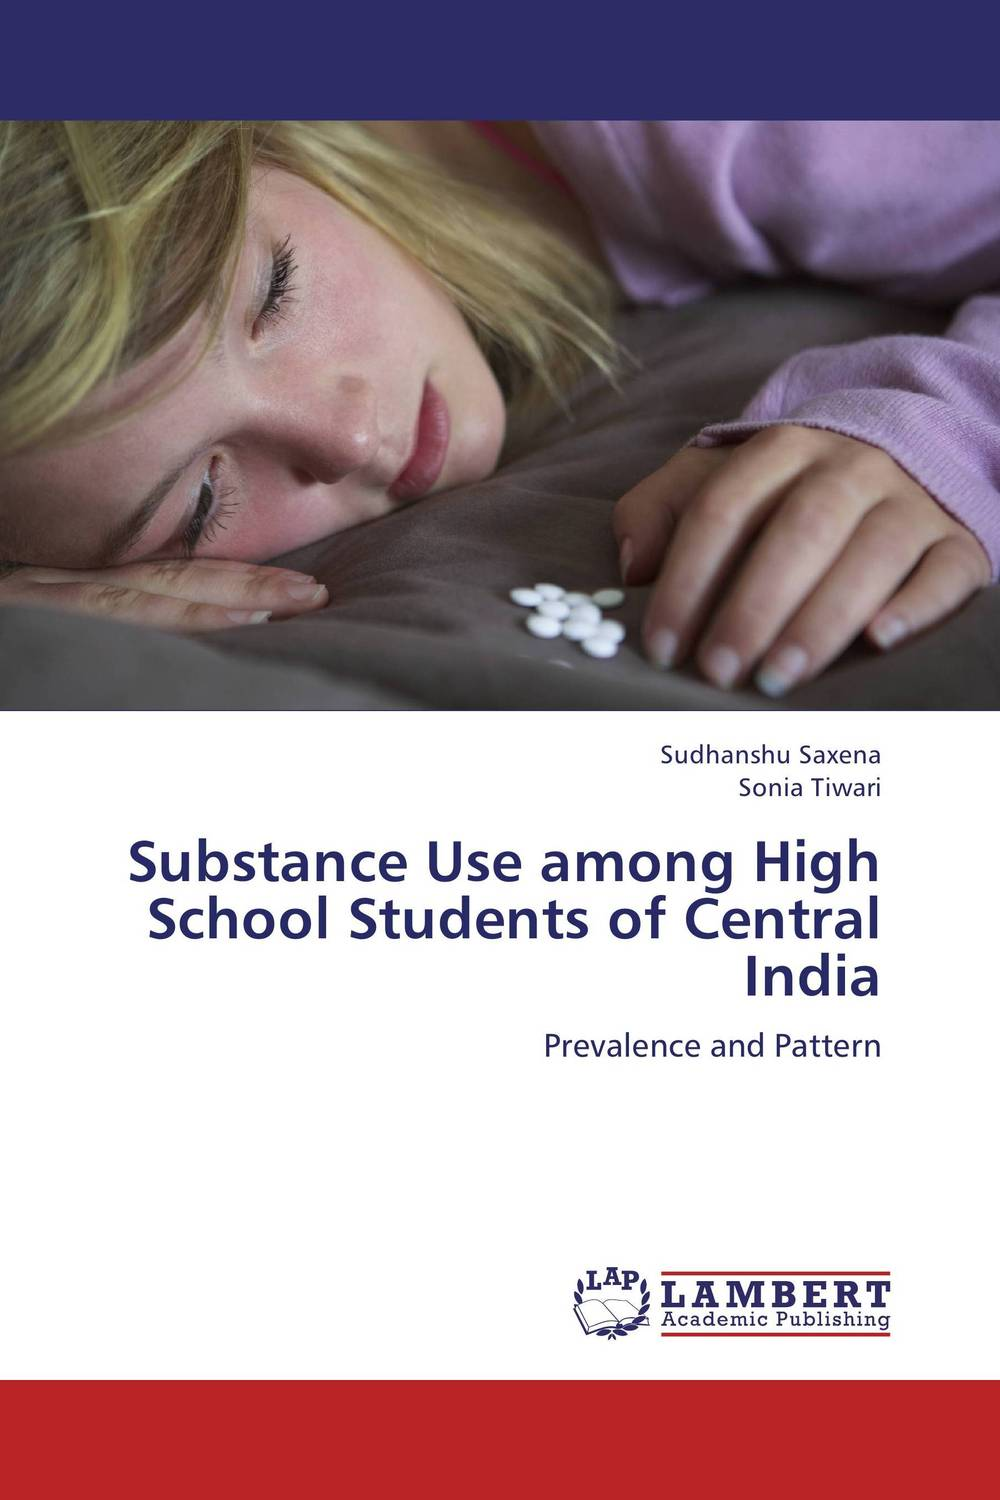 Substance Use among High School Students of Central India role of school leadership in promoting moral integrity among students